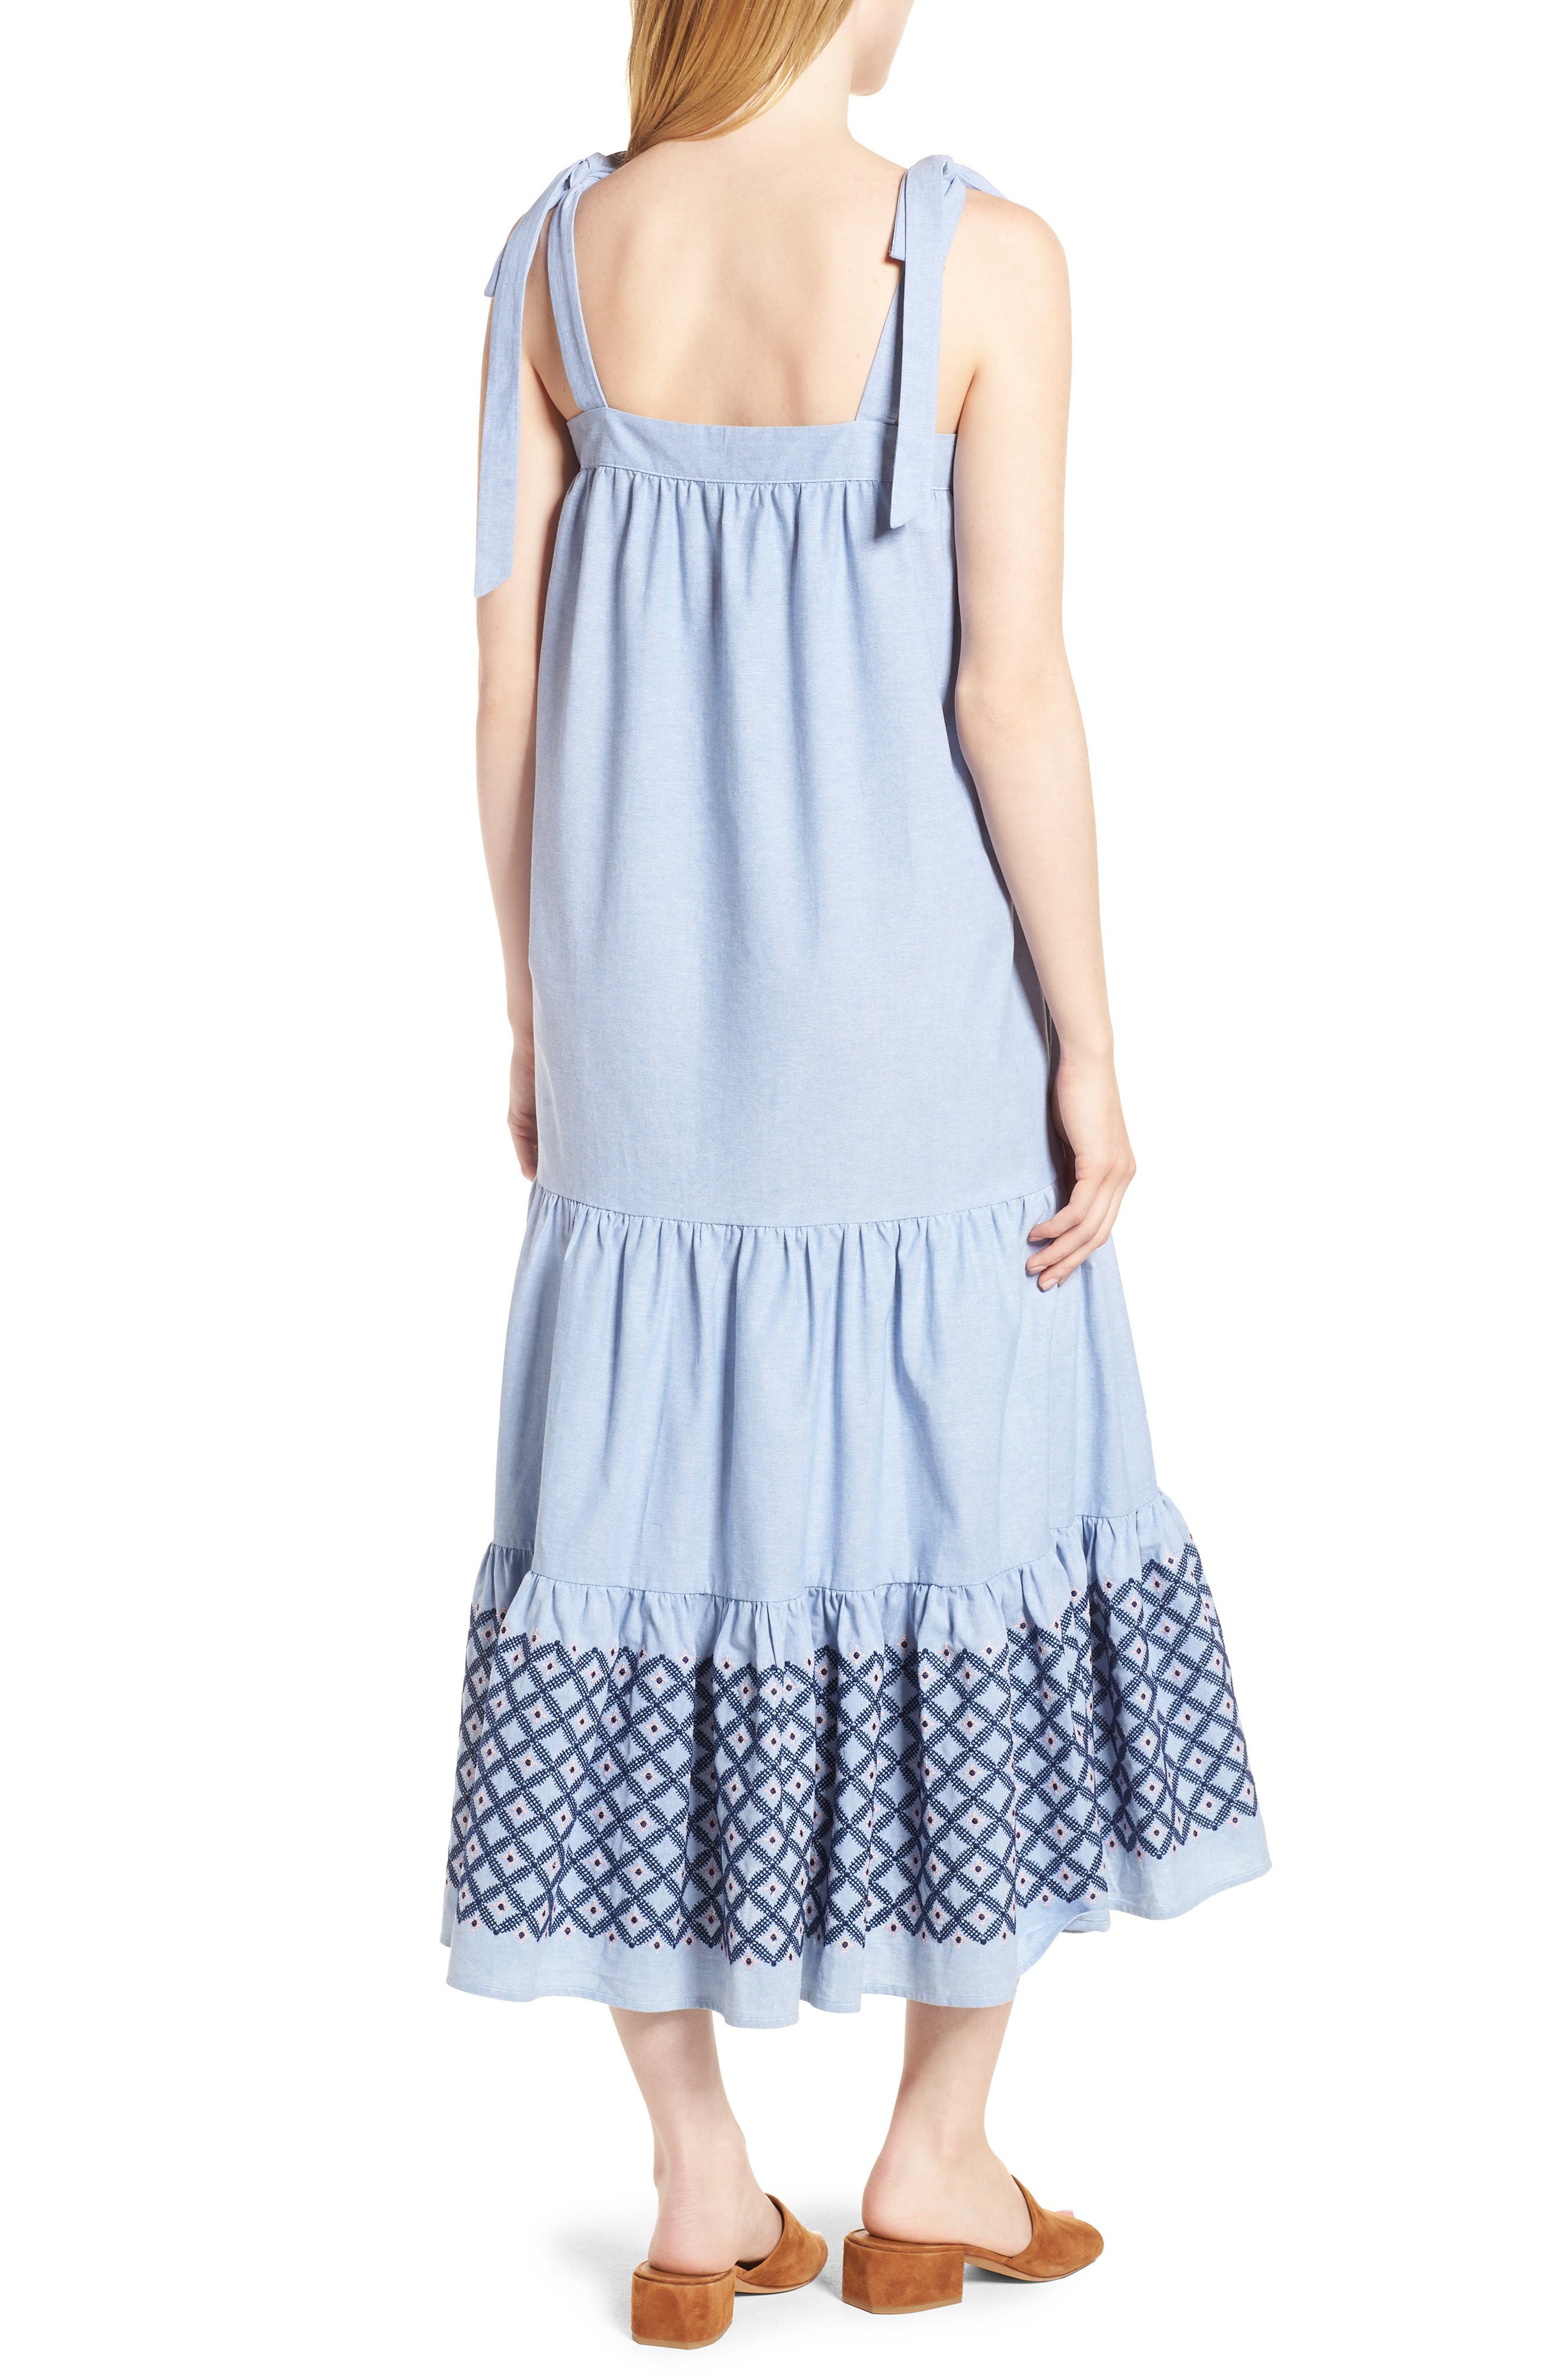 Lucy Dress,                             Alternate thumbnail 2, color,                             400